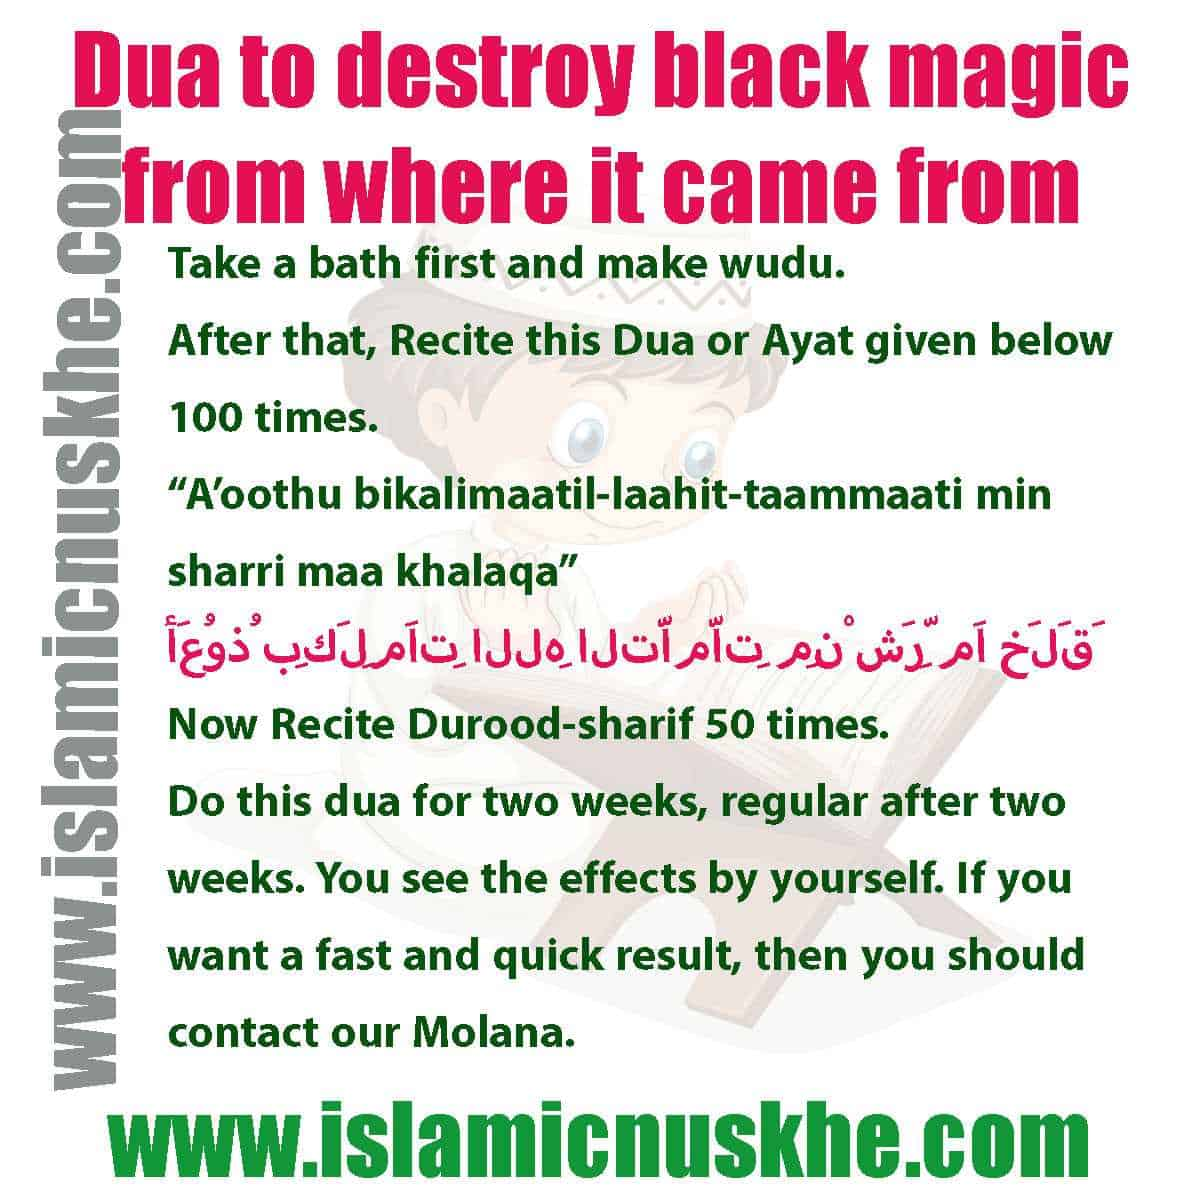 Here is Dua to destroy black magic from where it came from Step by Step